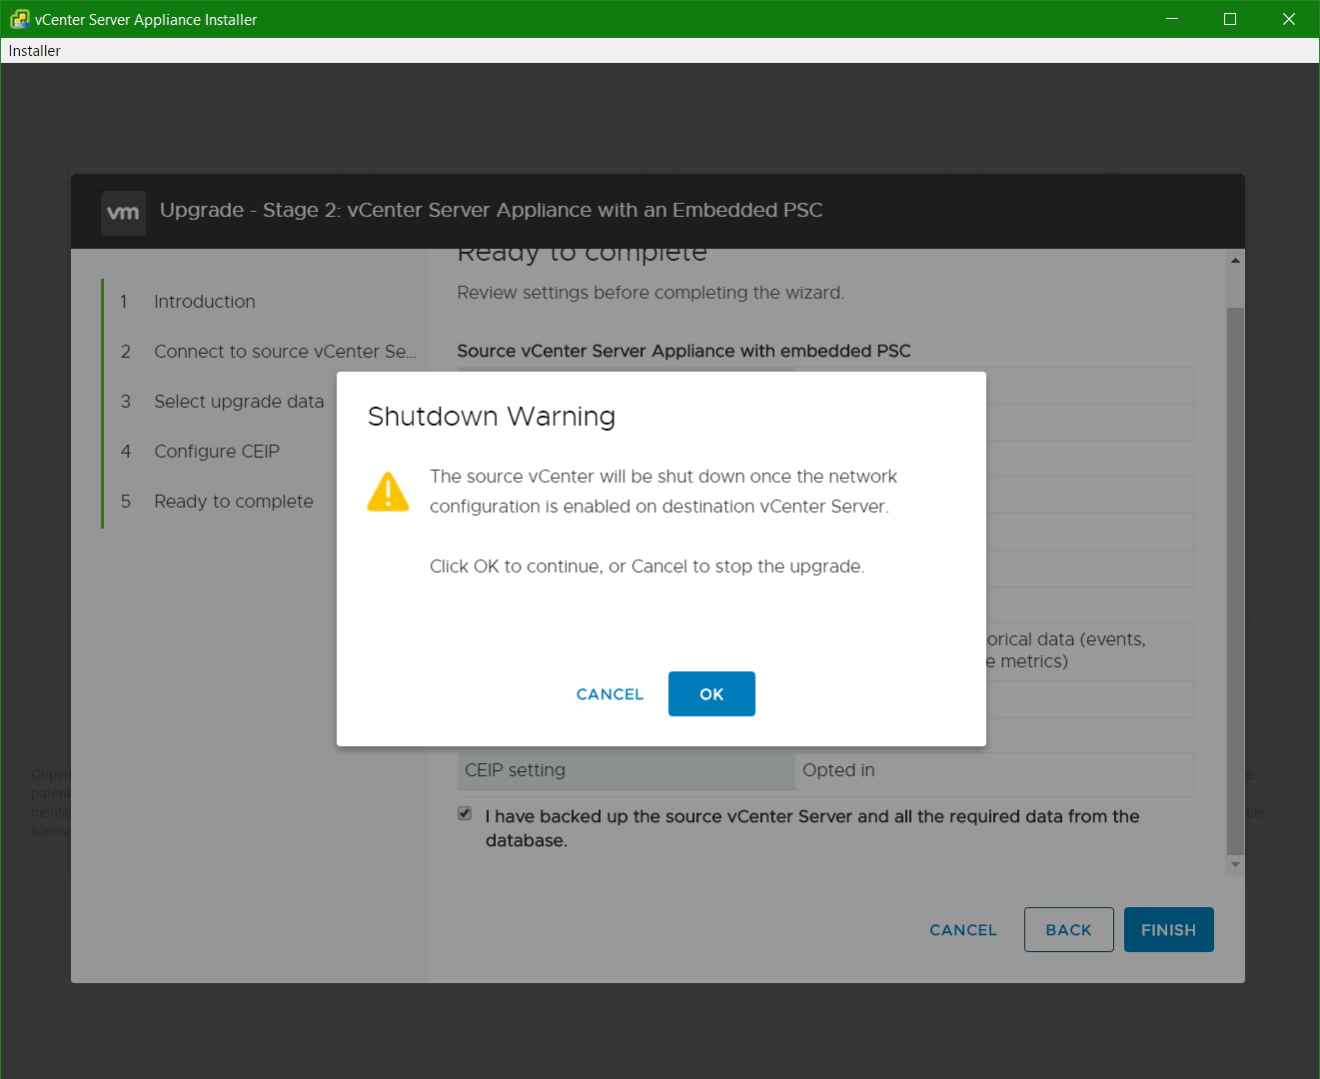 domalab.com vmware vcsa upgrade stage 2 shutdown